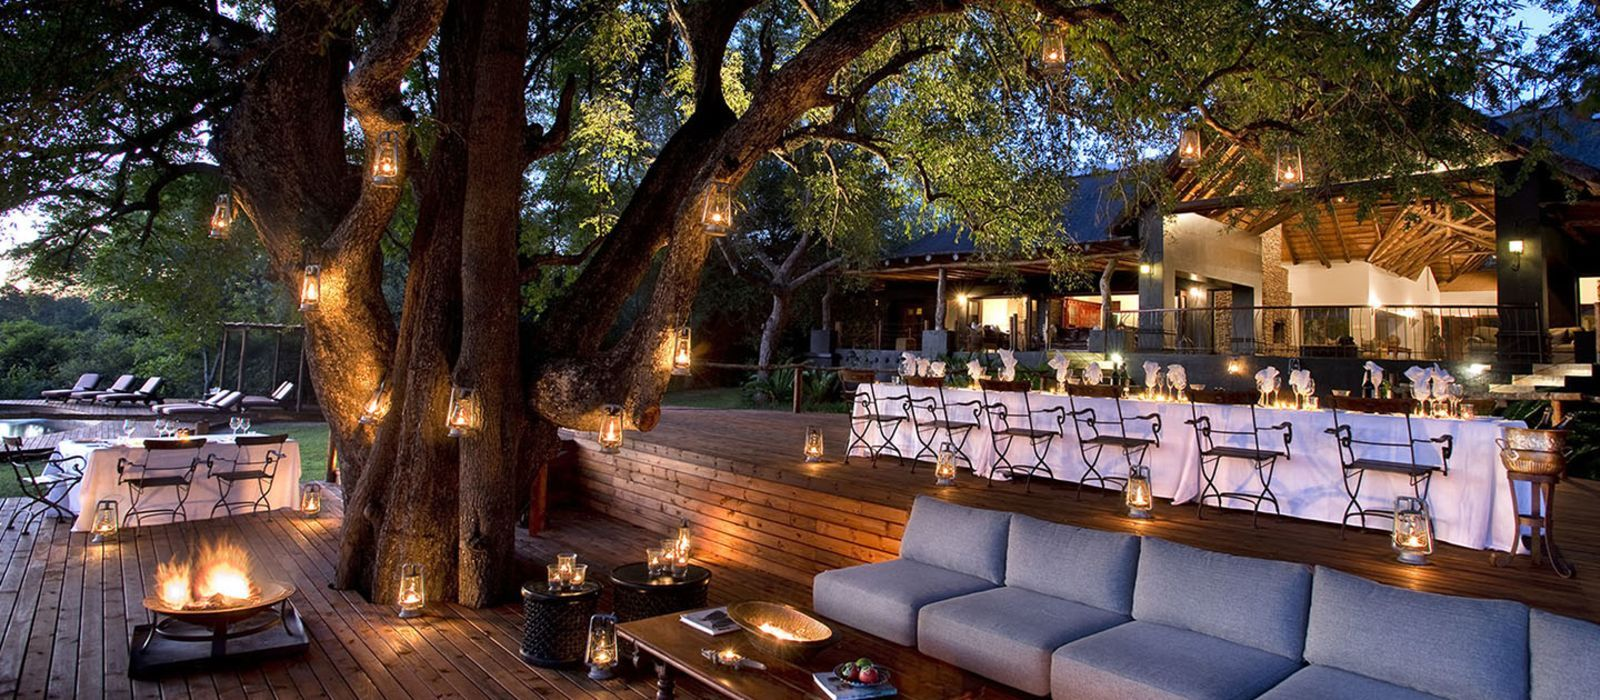 Hotel Lion Sands Tinga Lodge South Africa in 2020 Lion